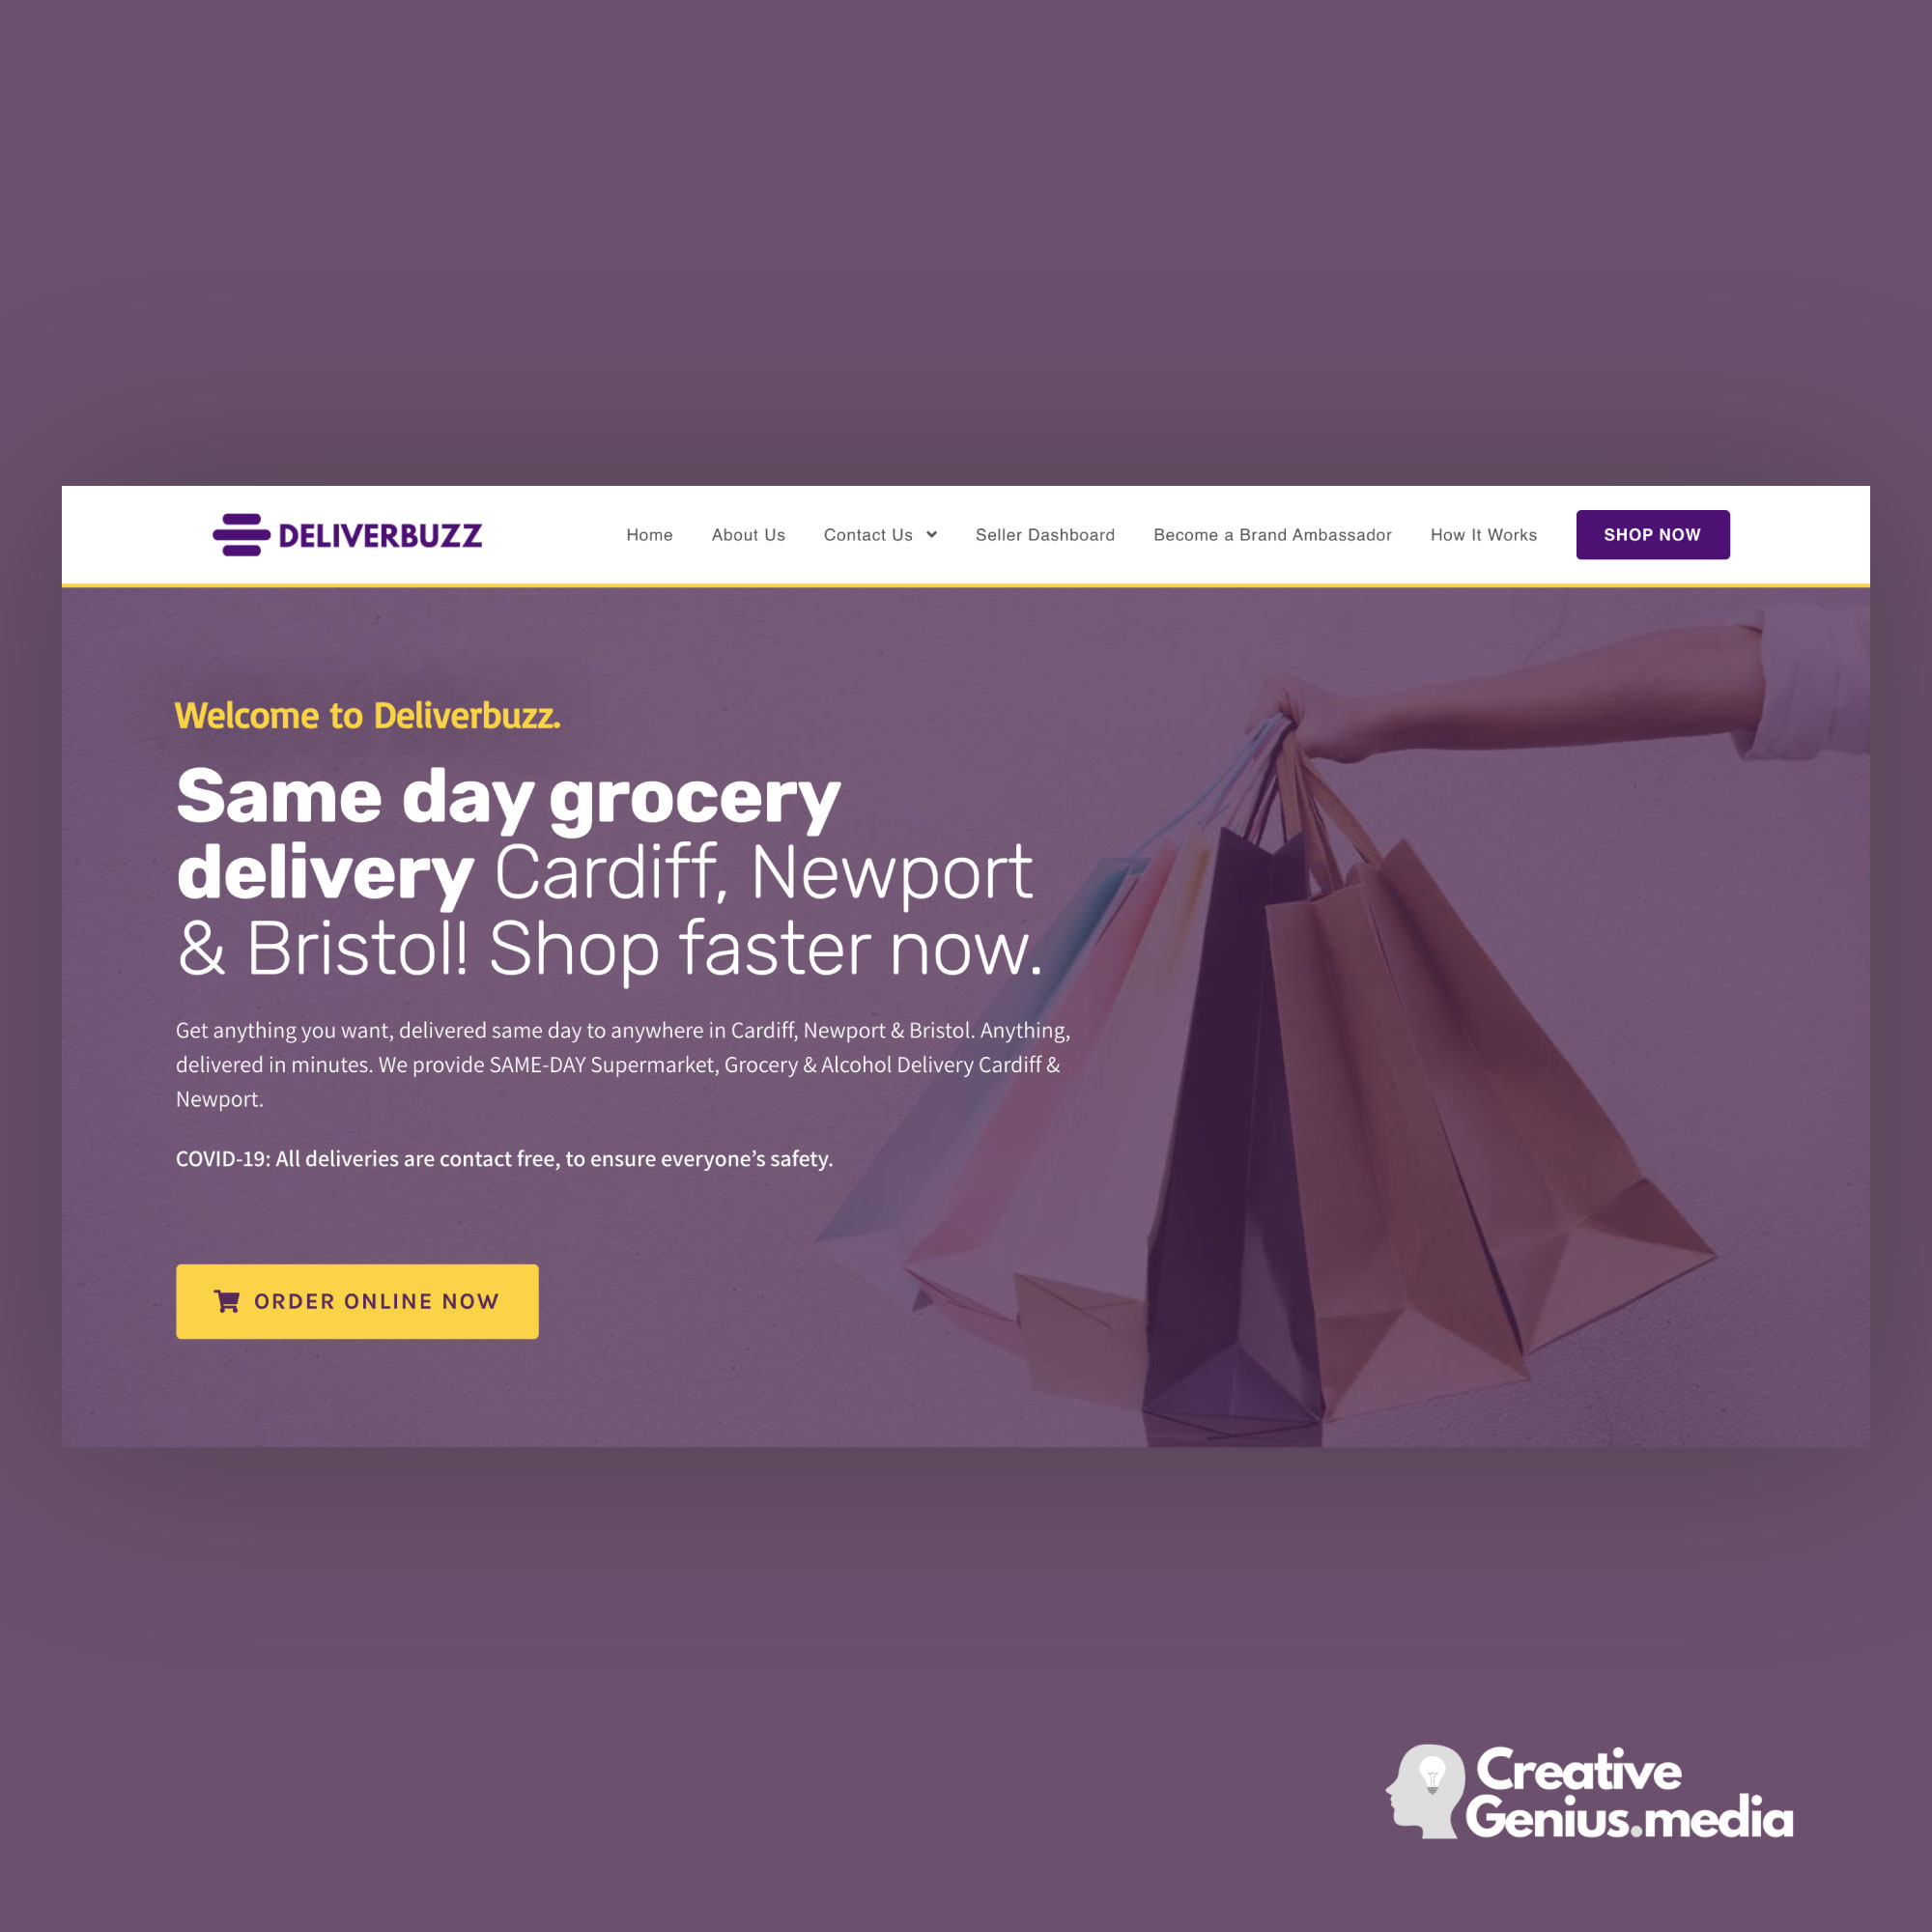 Deliverbuzz-Site